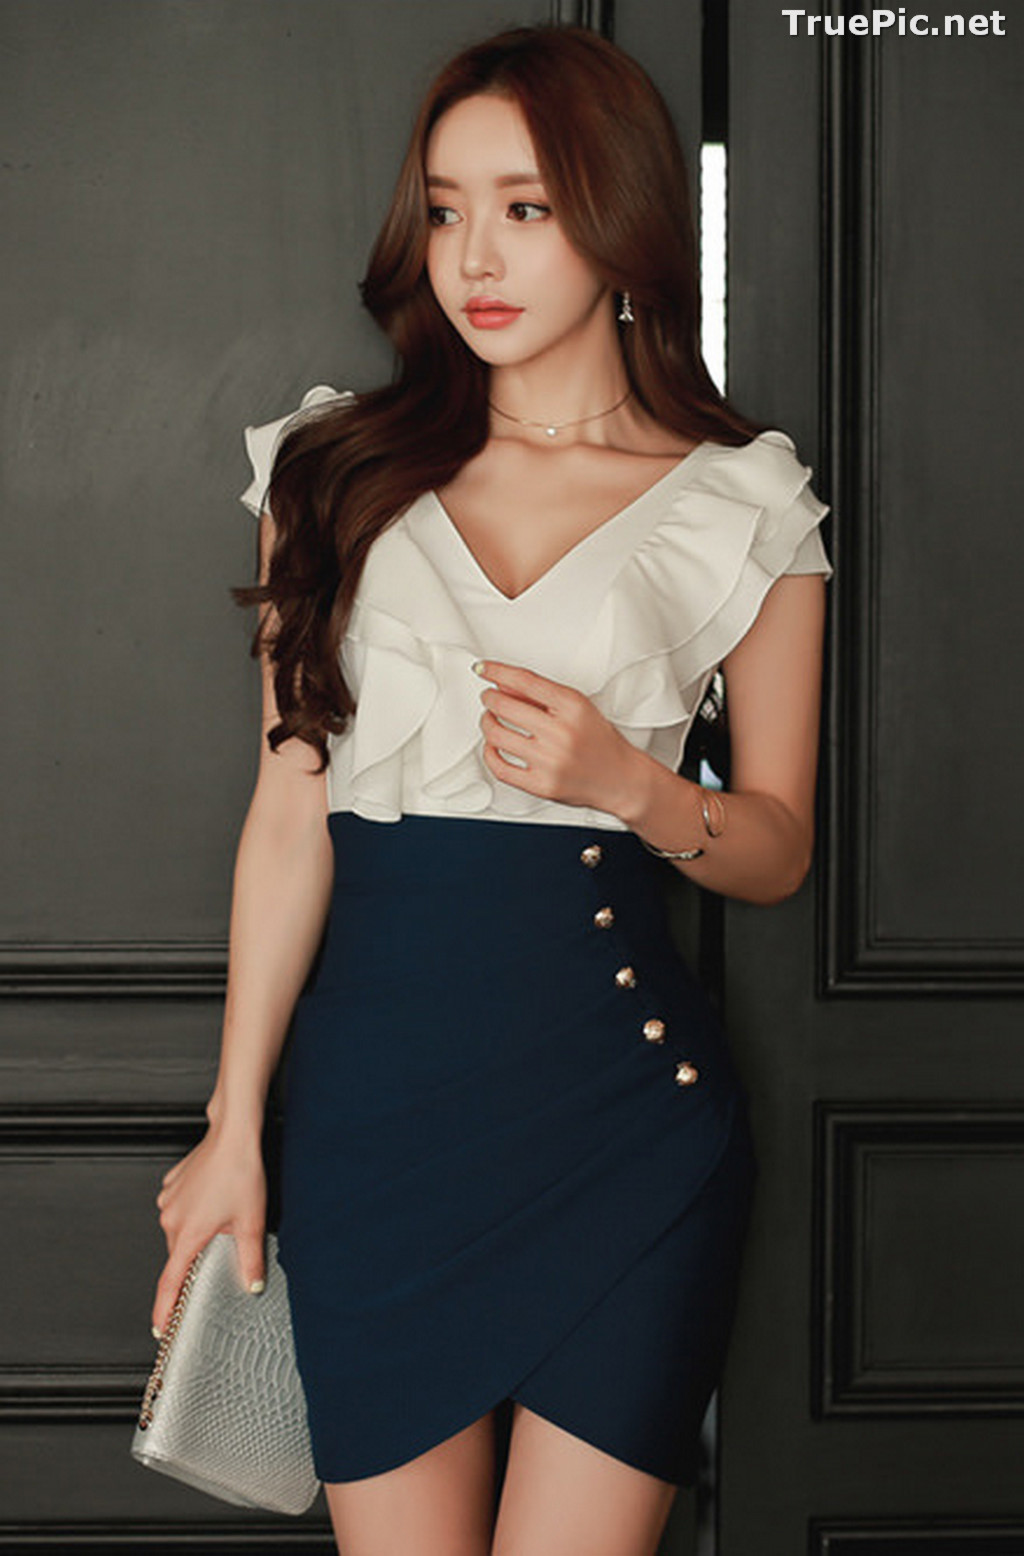 Image Son Yoon Joo Beautiful Photos – Korean Fashion Collection #4 - TruePic.net - Picture-6